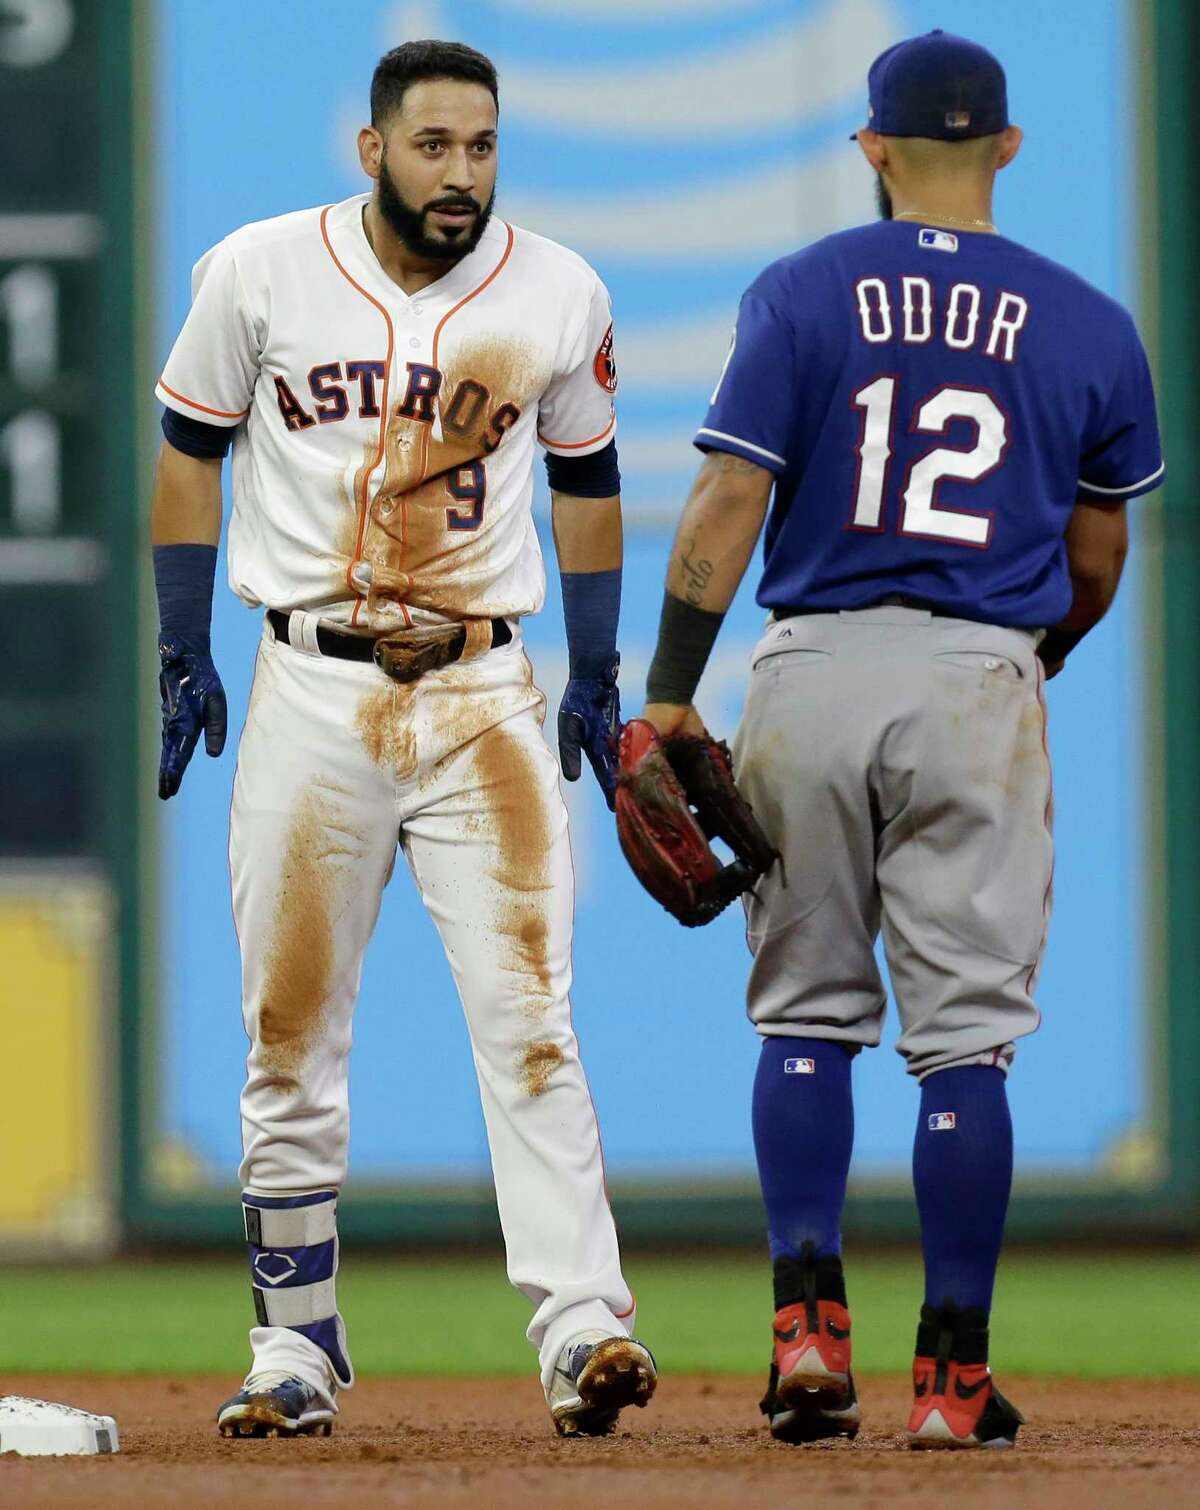 Houston Astros Marwin Gonzalez talks to Texas Rangers Rougned Odor as he dusts himself off after hitting a double during the second inning at Minute Maid Park Wednesday, May 3, 2017, in Houston.